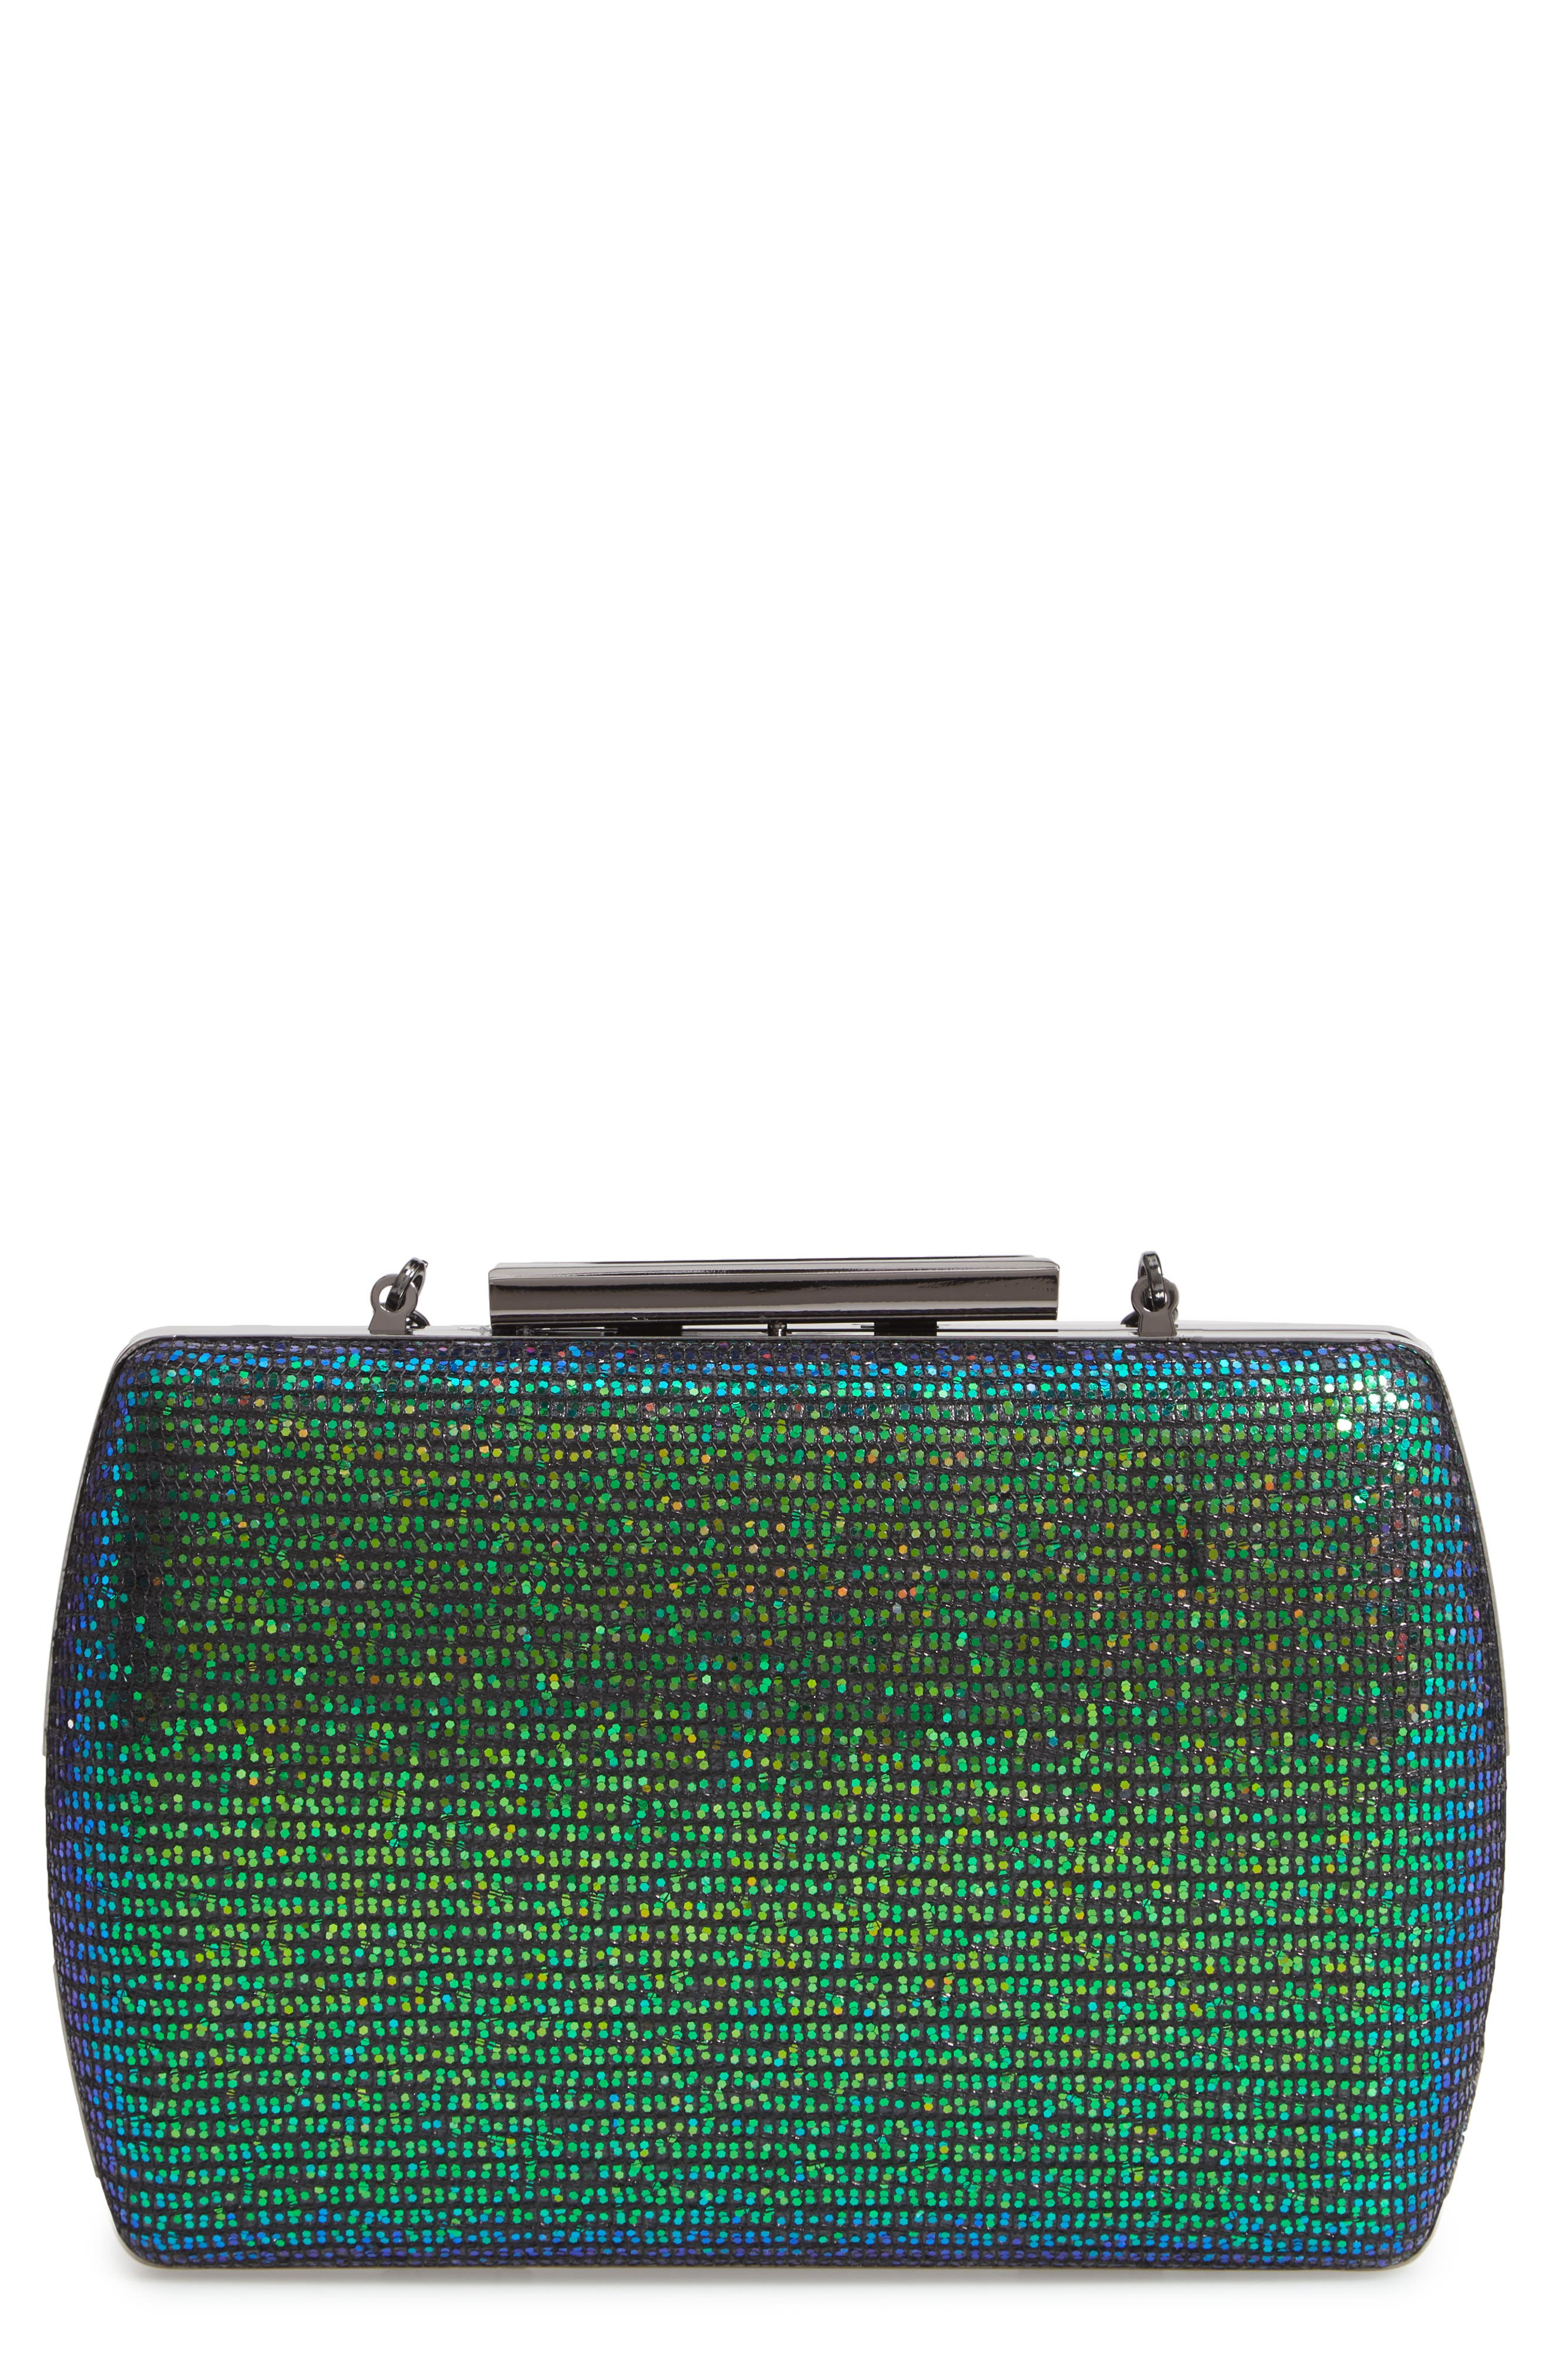 Glitter Minaudière,                         Main,                         color, BLUE GREEN